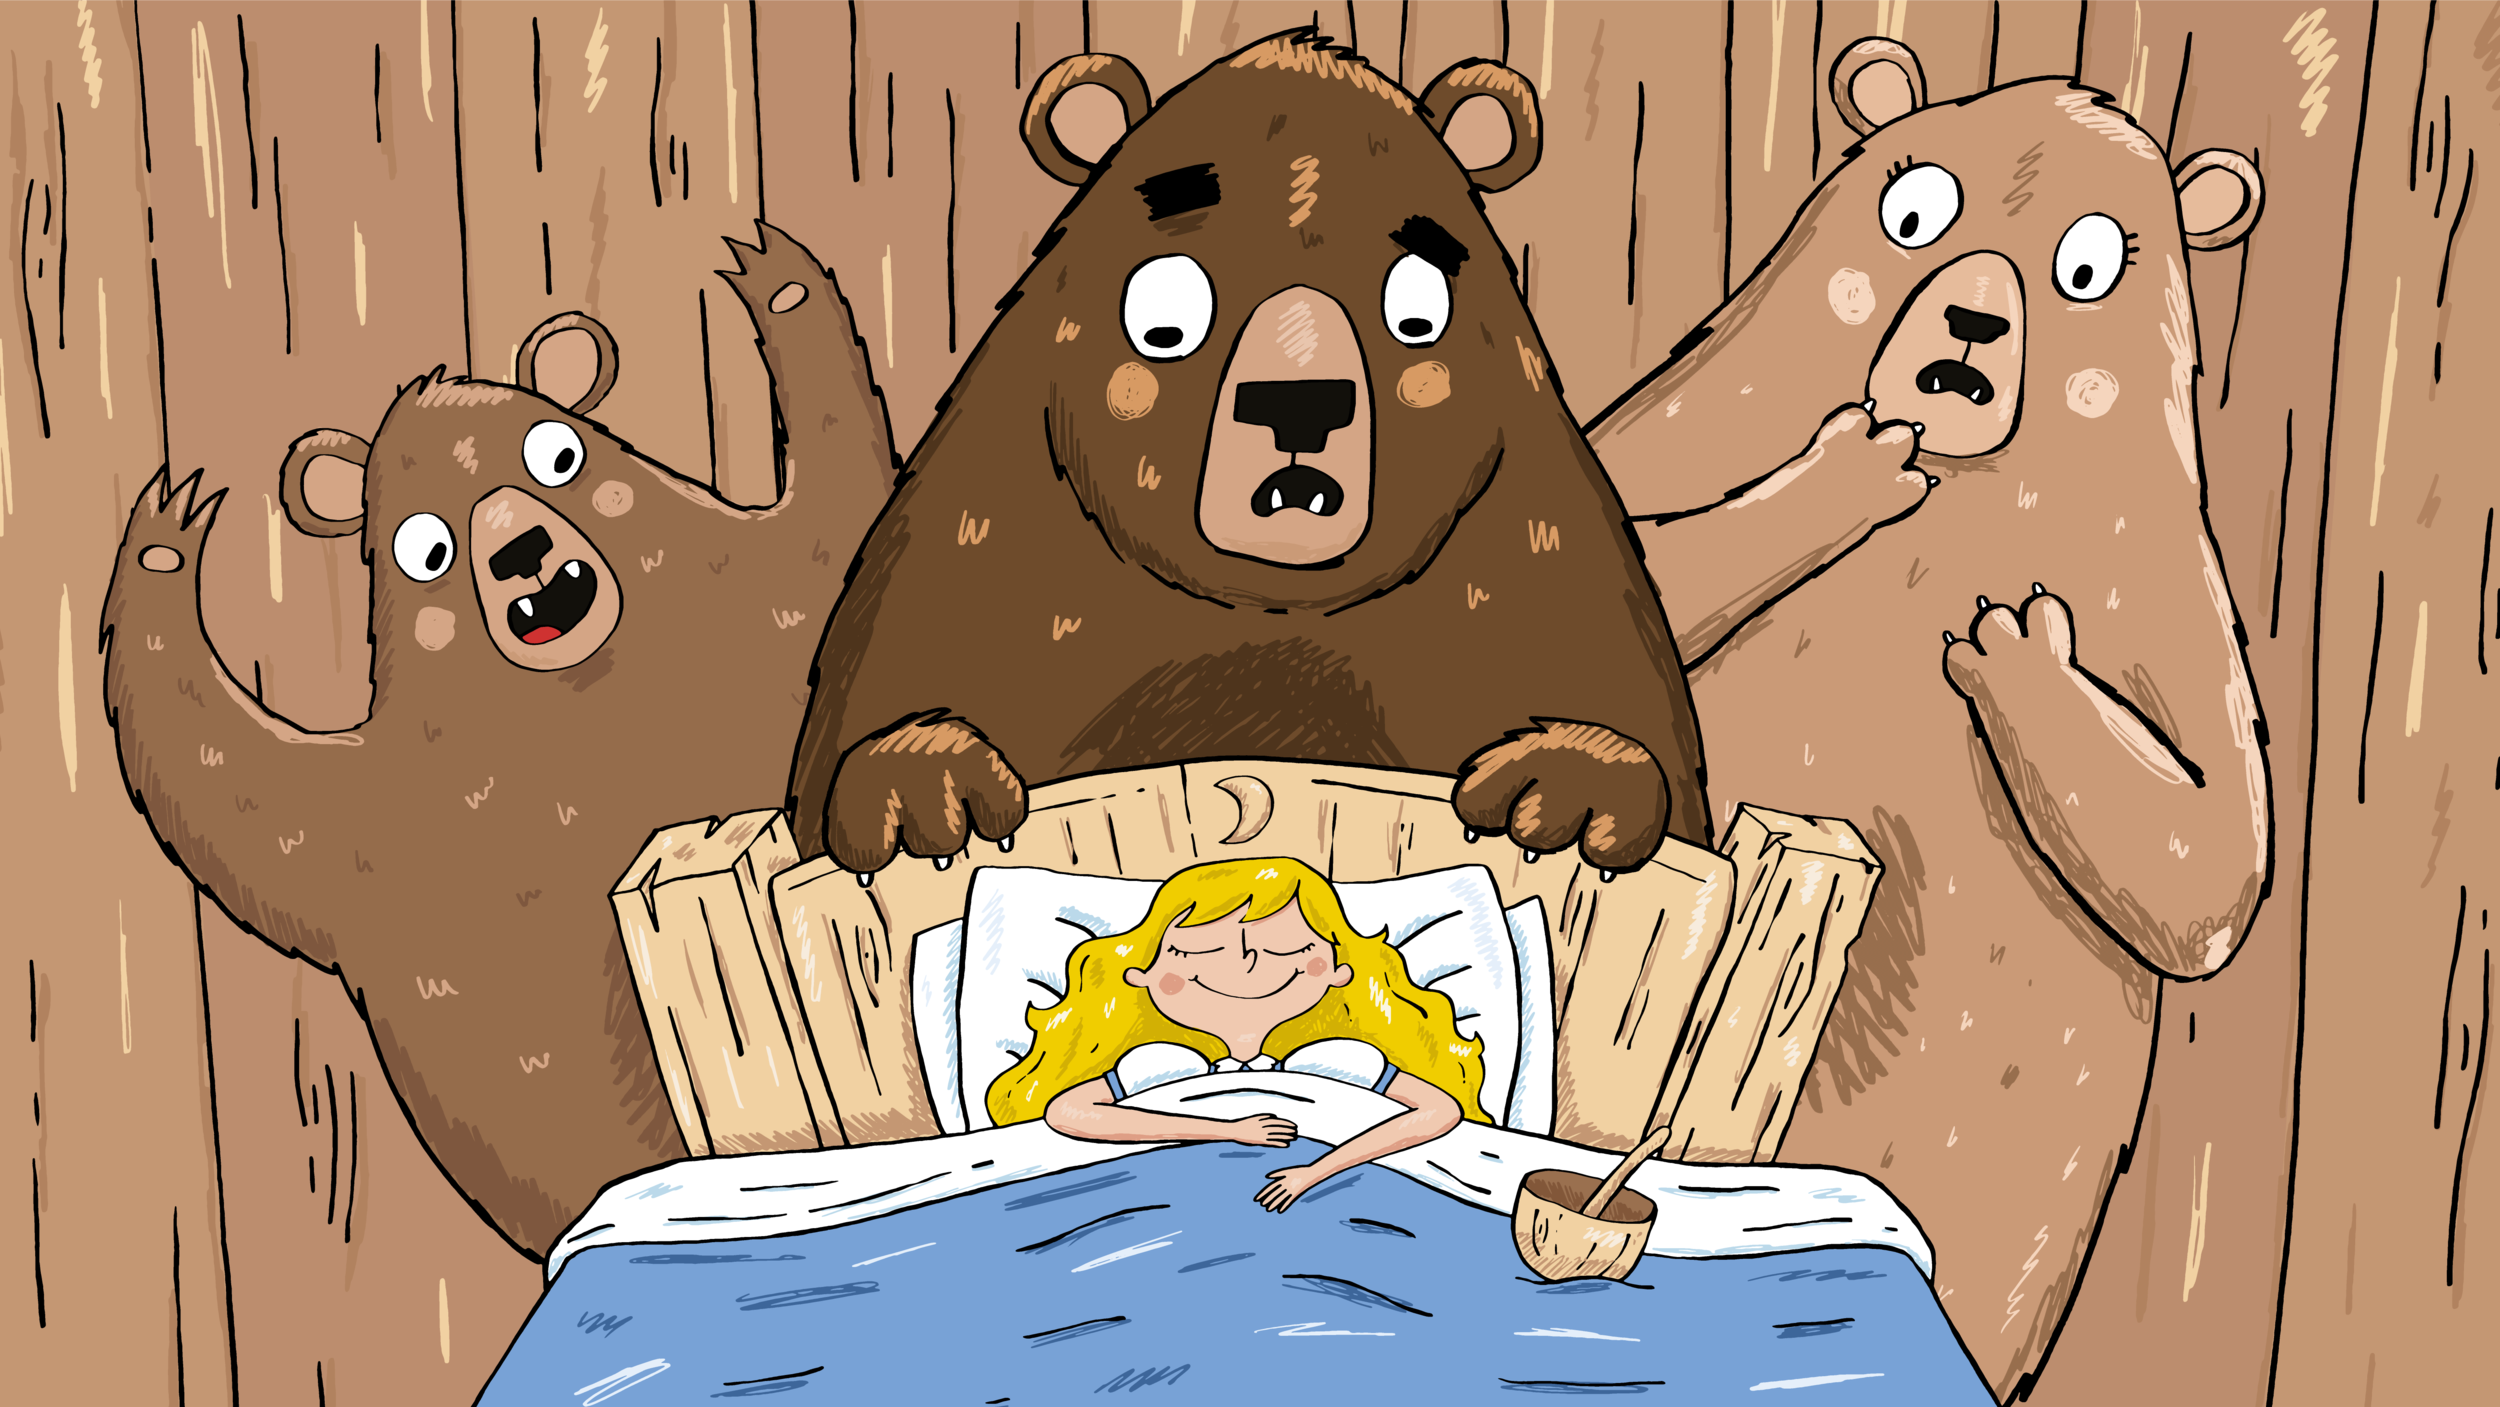 traditional_tales_scene_goldilocks_and_the_three_bears.png